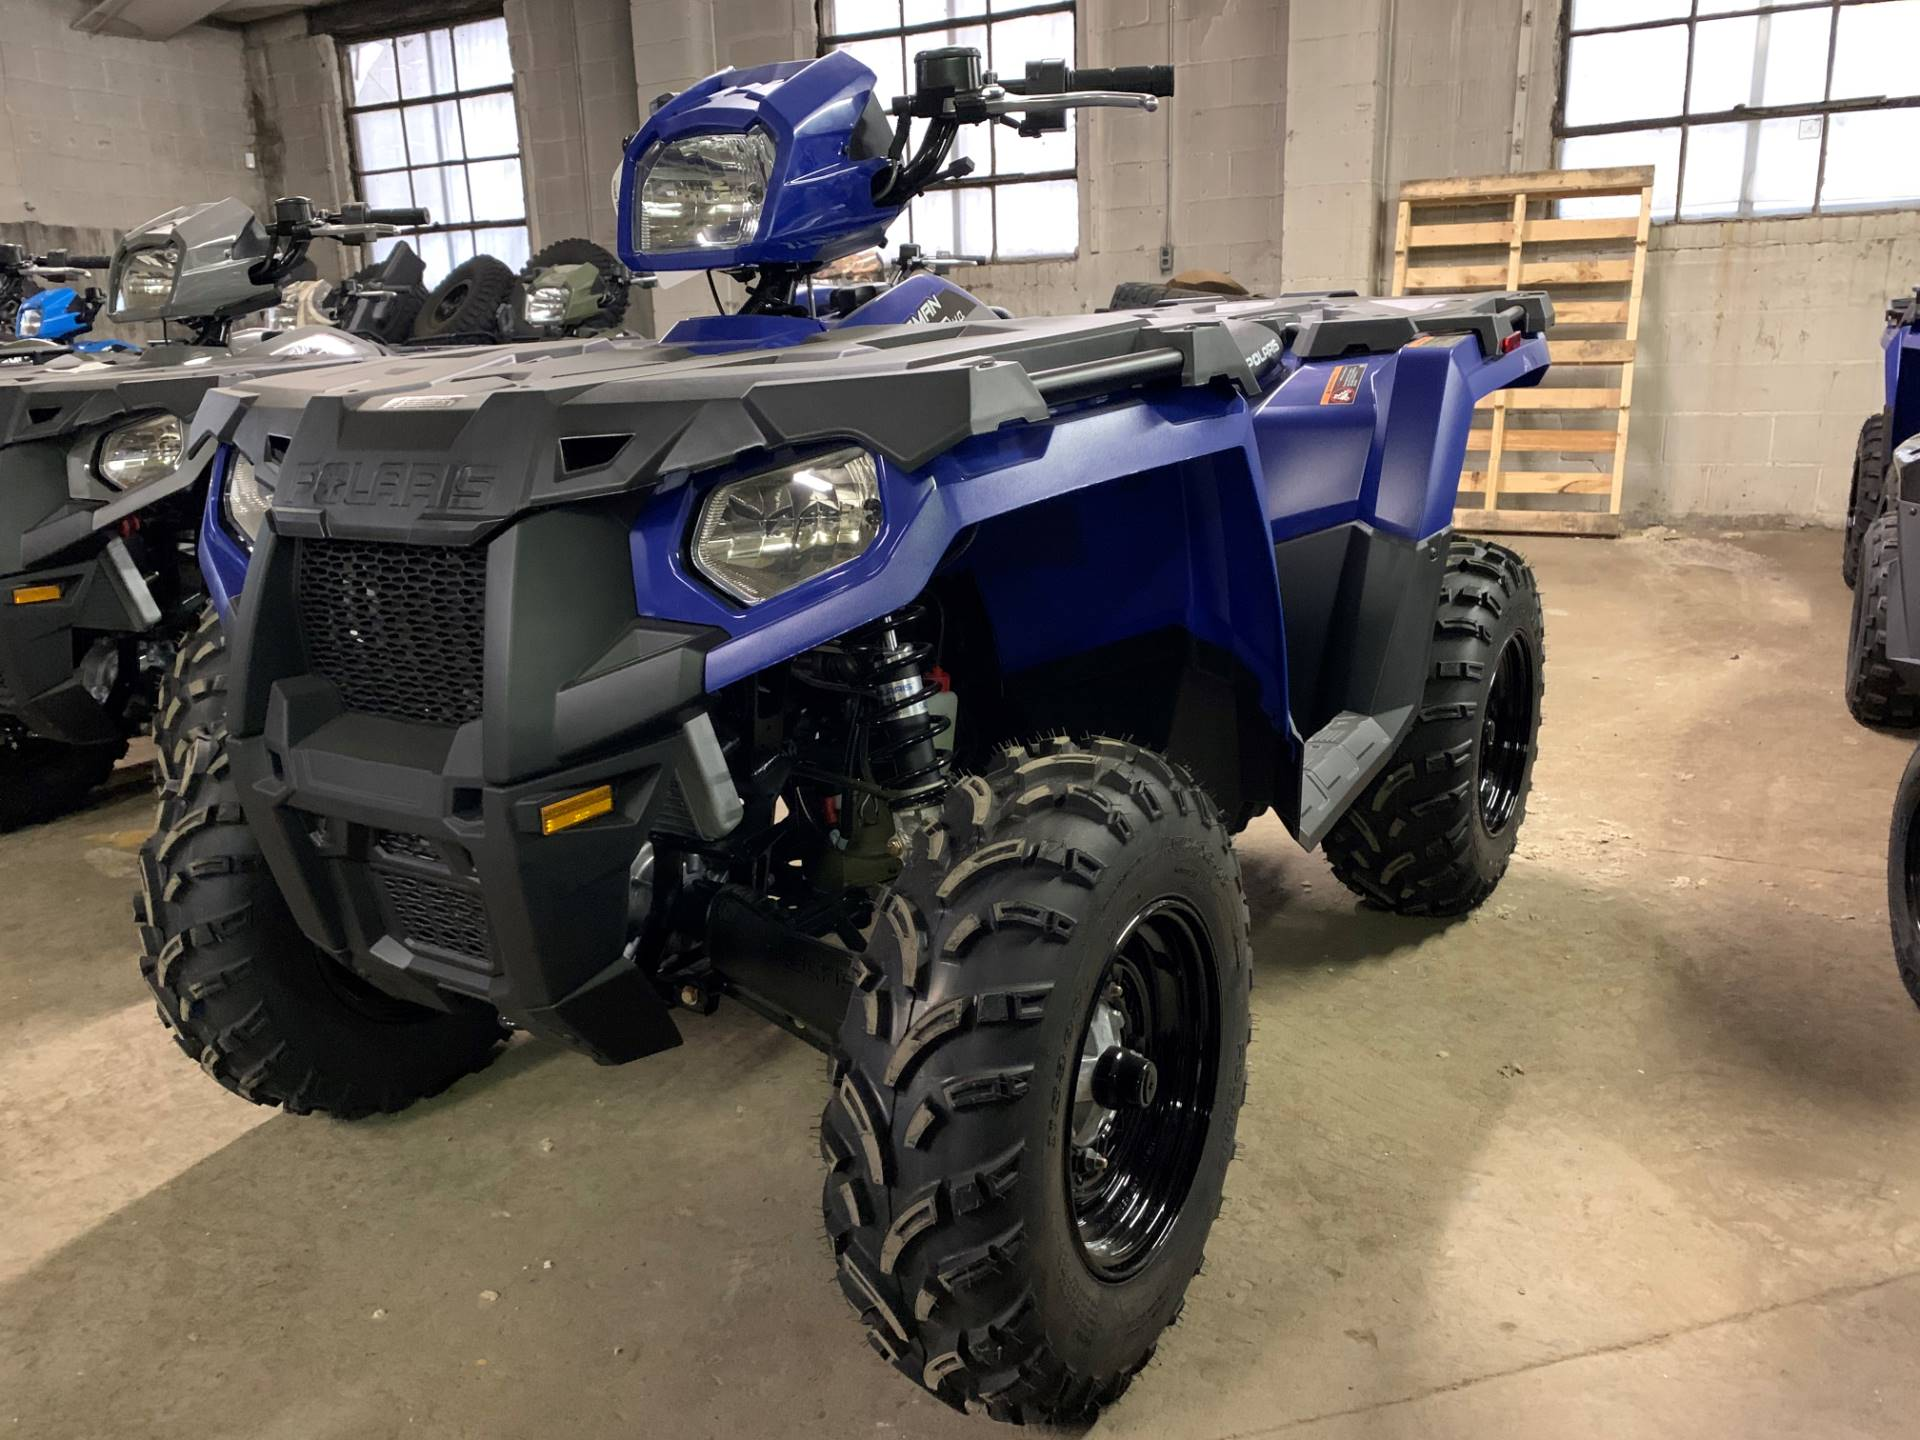 2020 Polaris Sportsman 450 H.O. in Beaver Falls, Pennsylvania - Photo 2